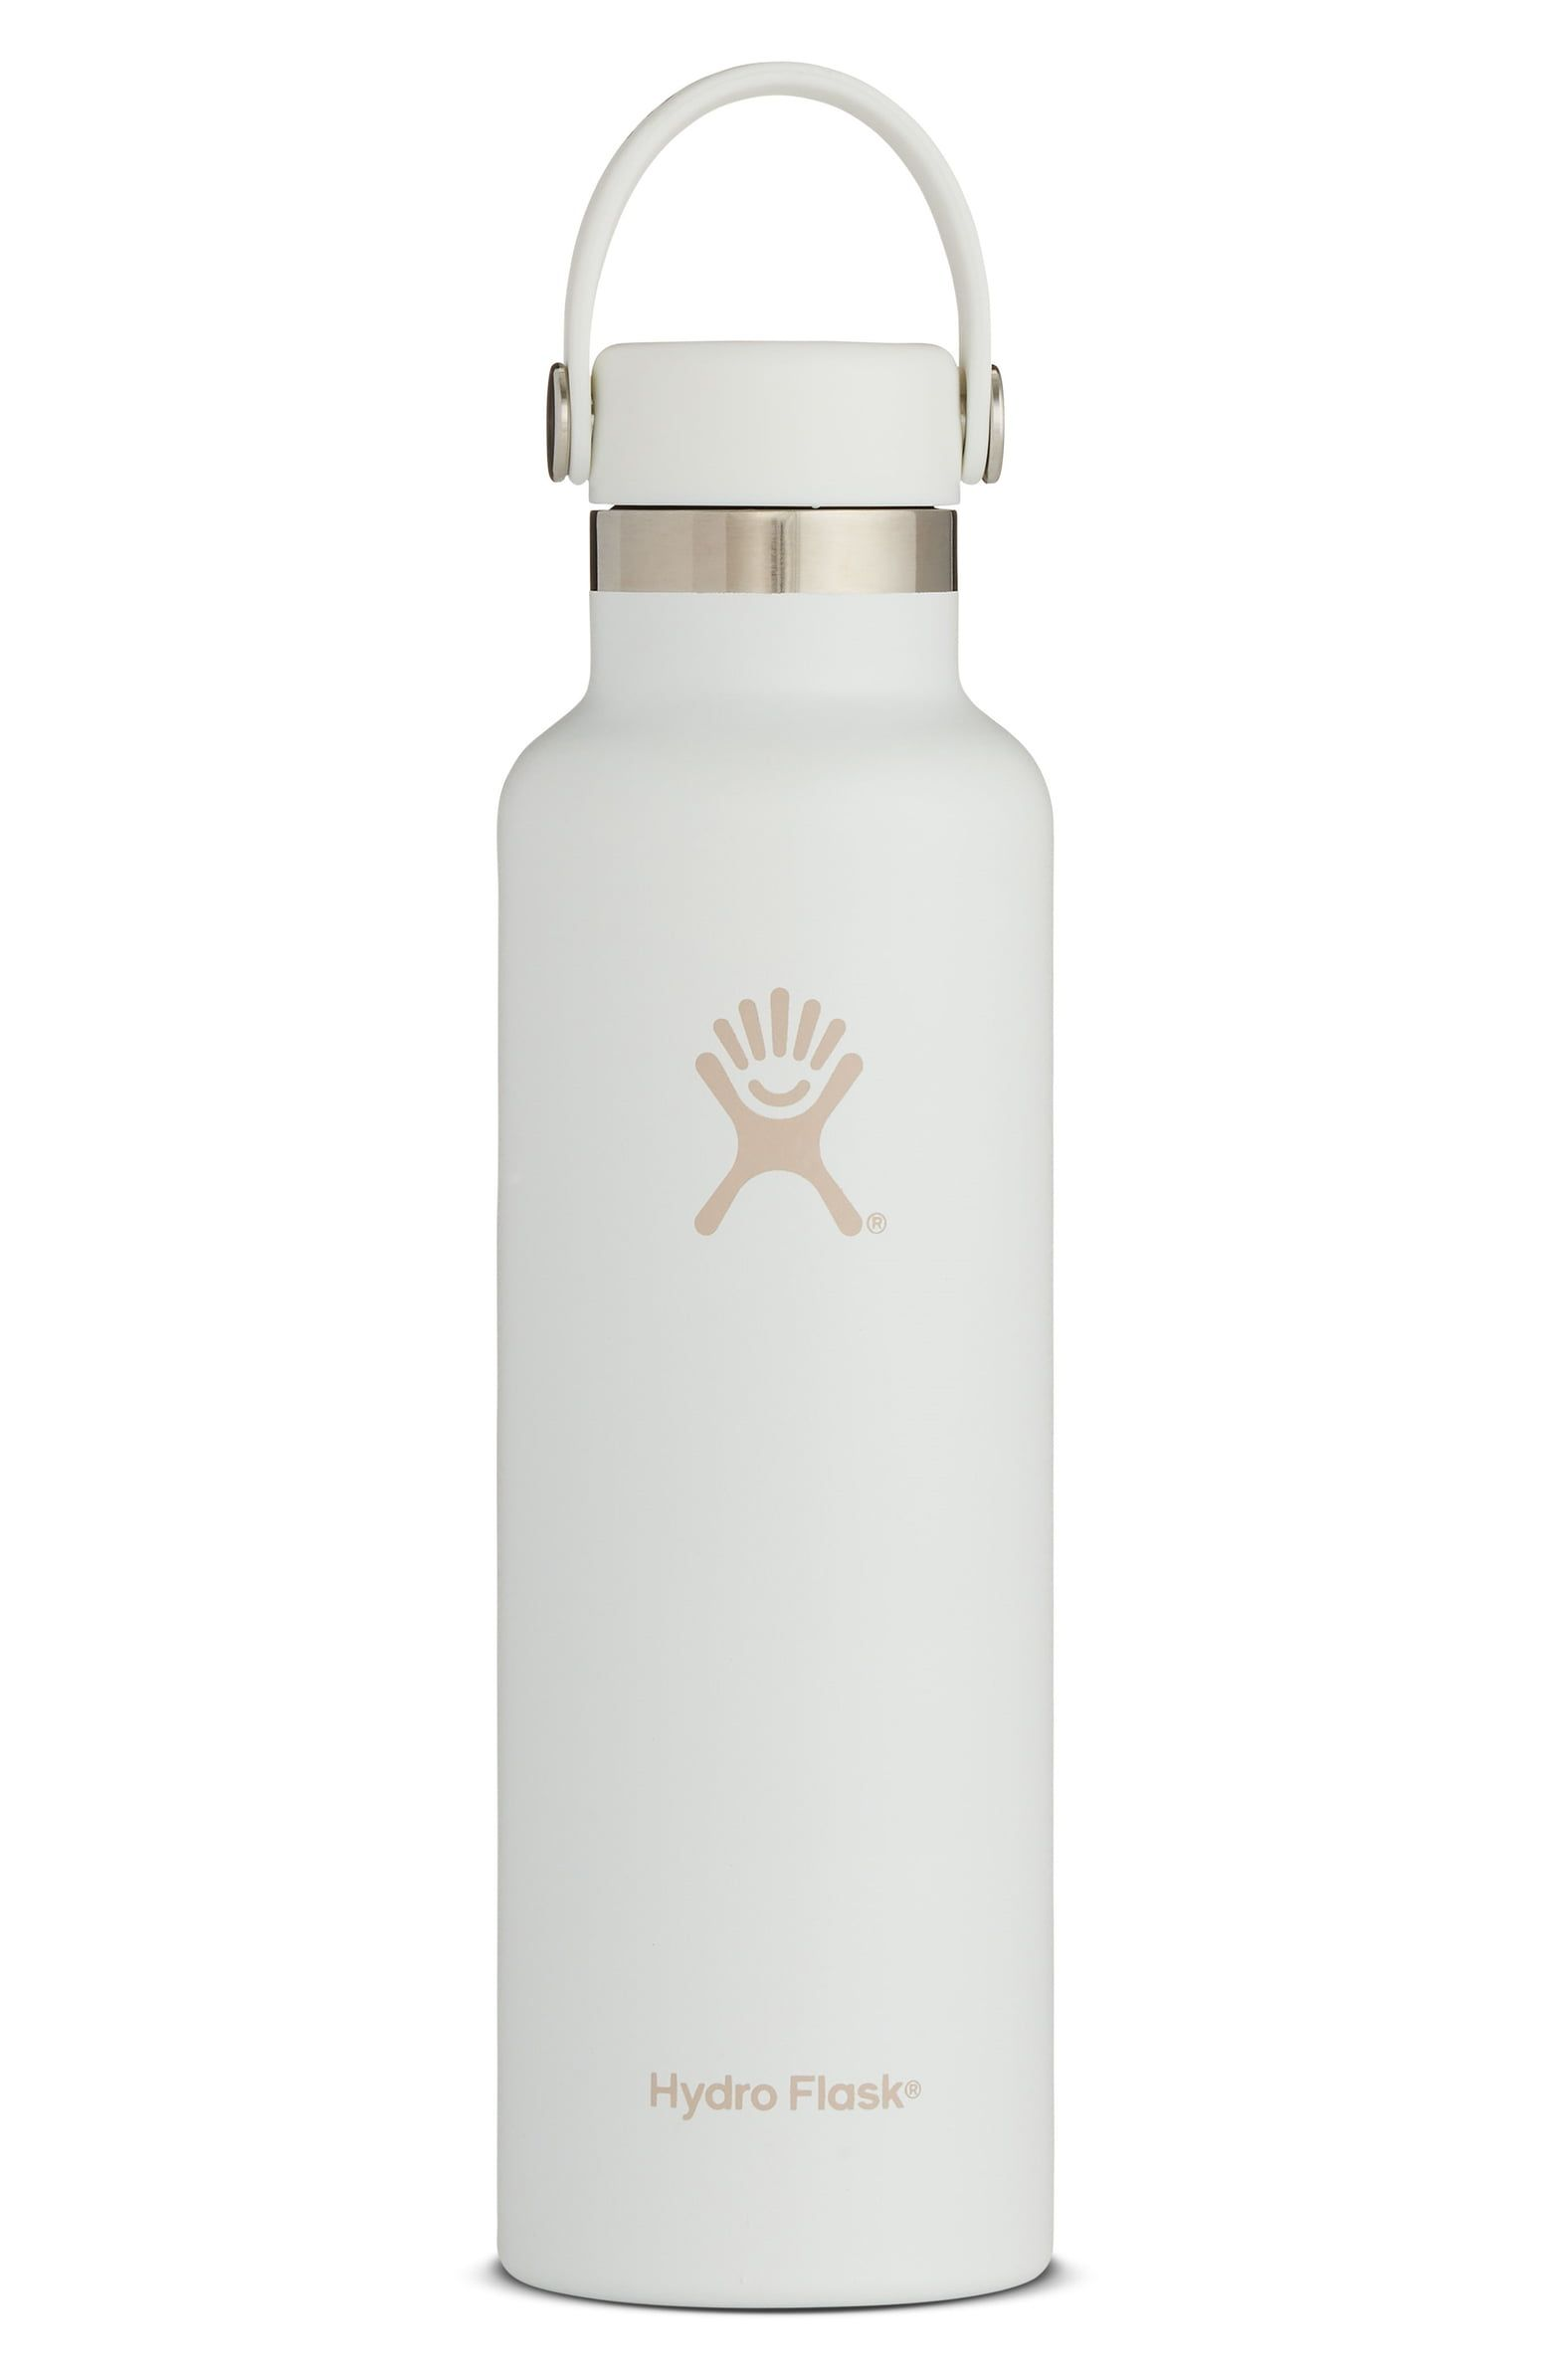 Hydro Flask Skyline 21Ounce Standard Mouth Bottle with